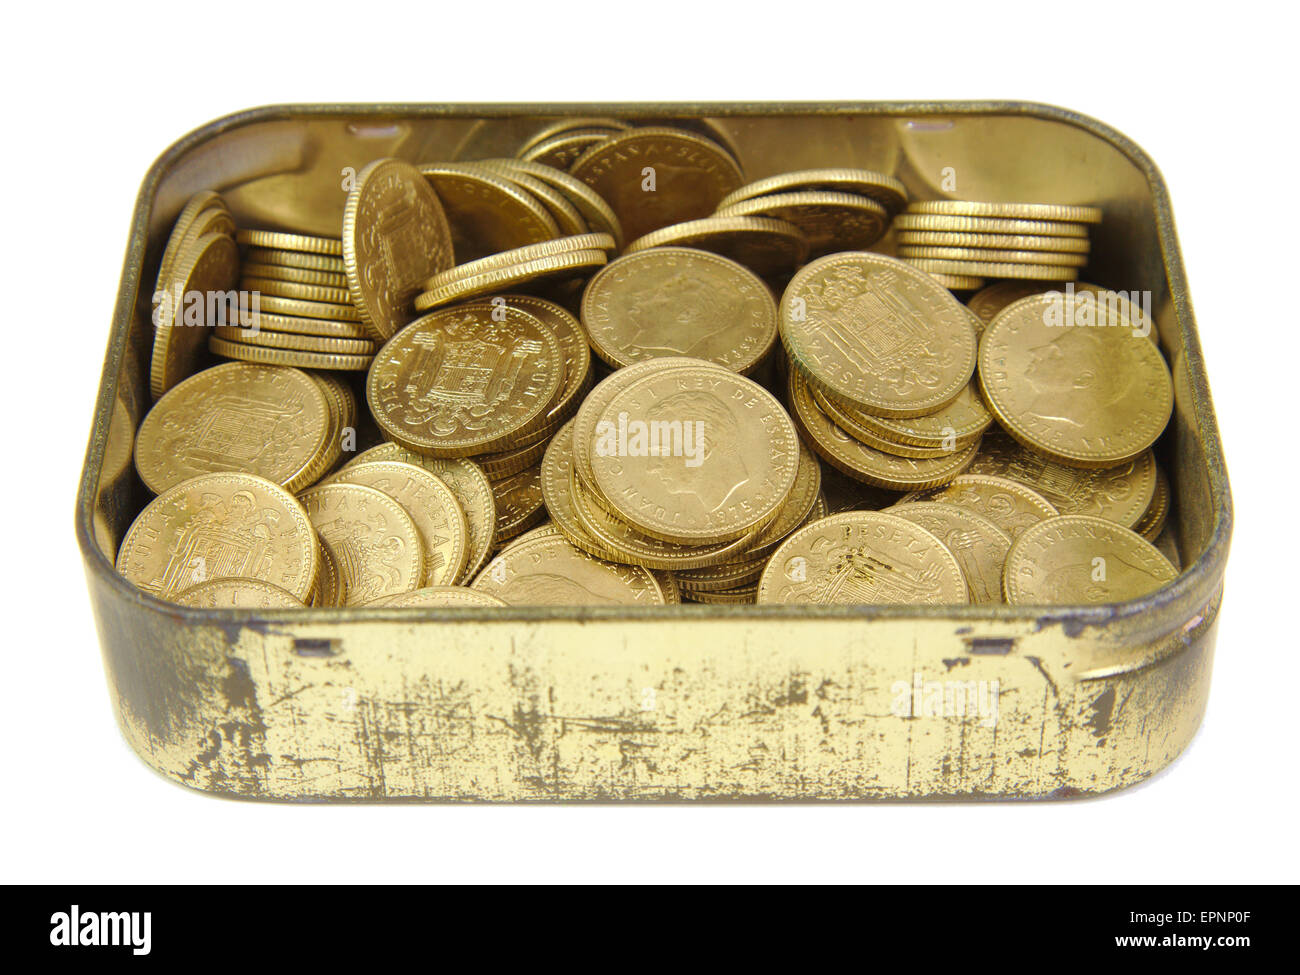 Bunch of old Spanish coins in a golden box isolated on white Stock